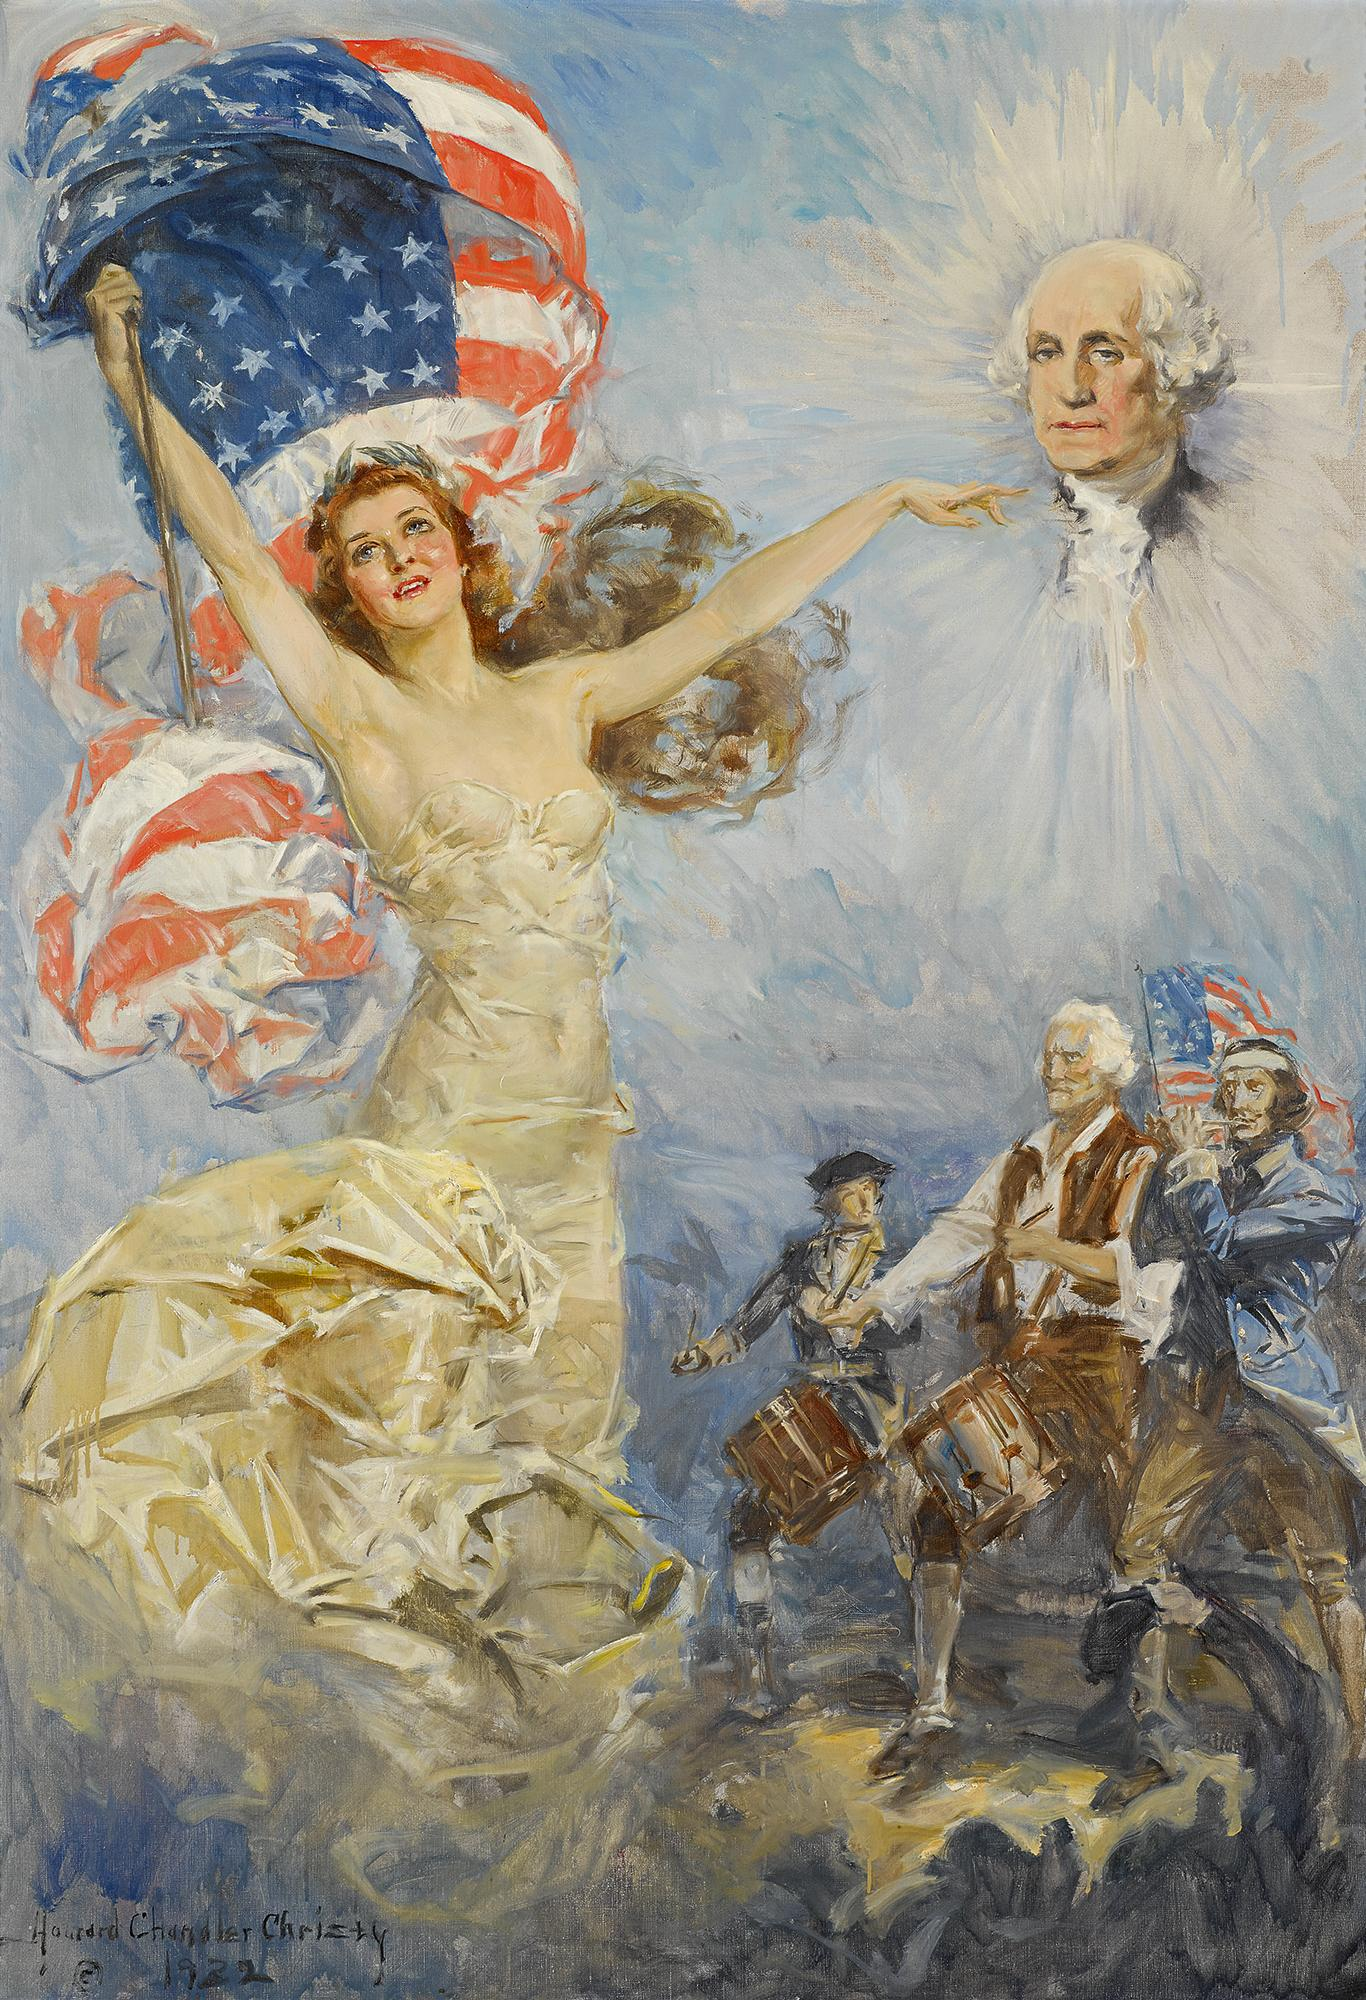 Seems howard chandler christy nude once